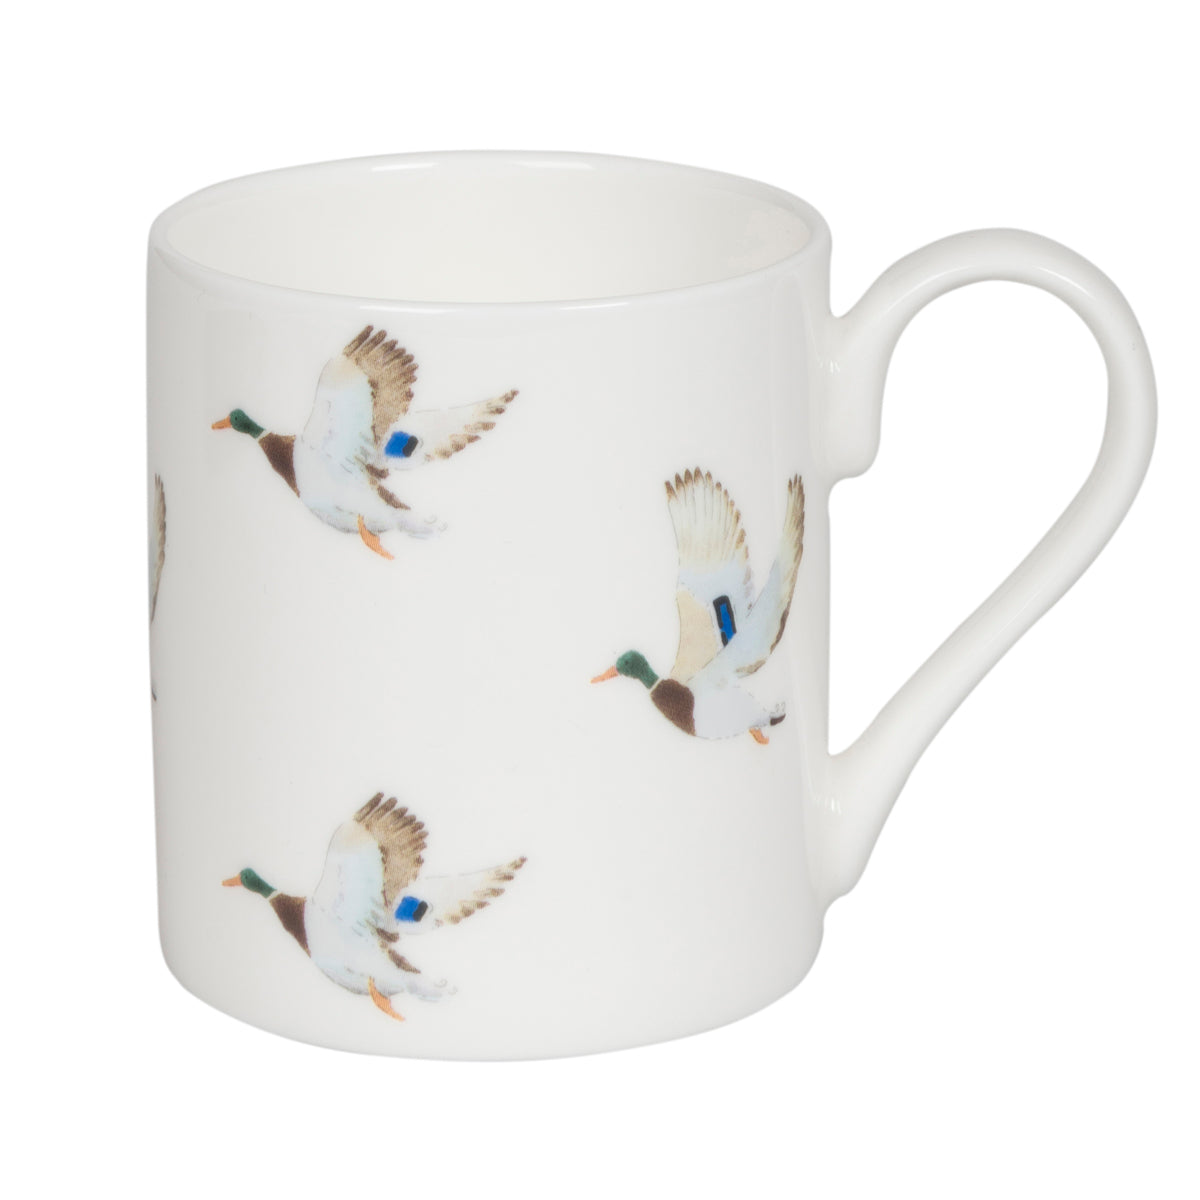 Ducks Mug by Sophie Allport